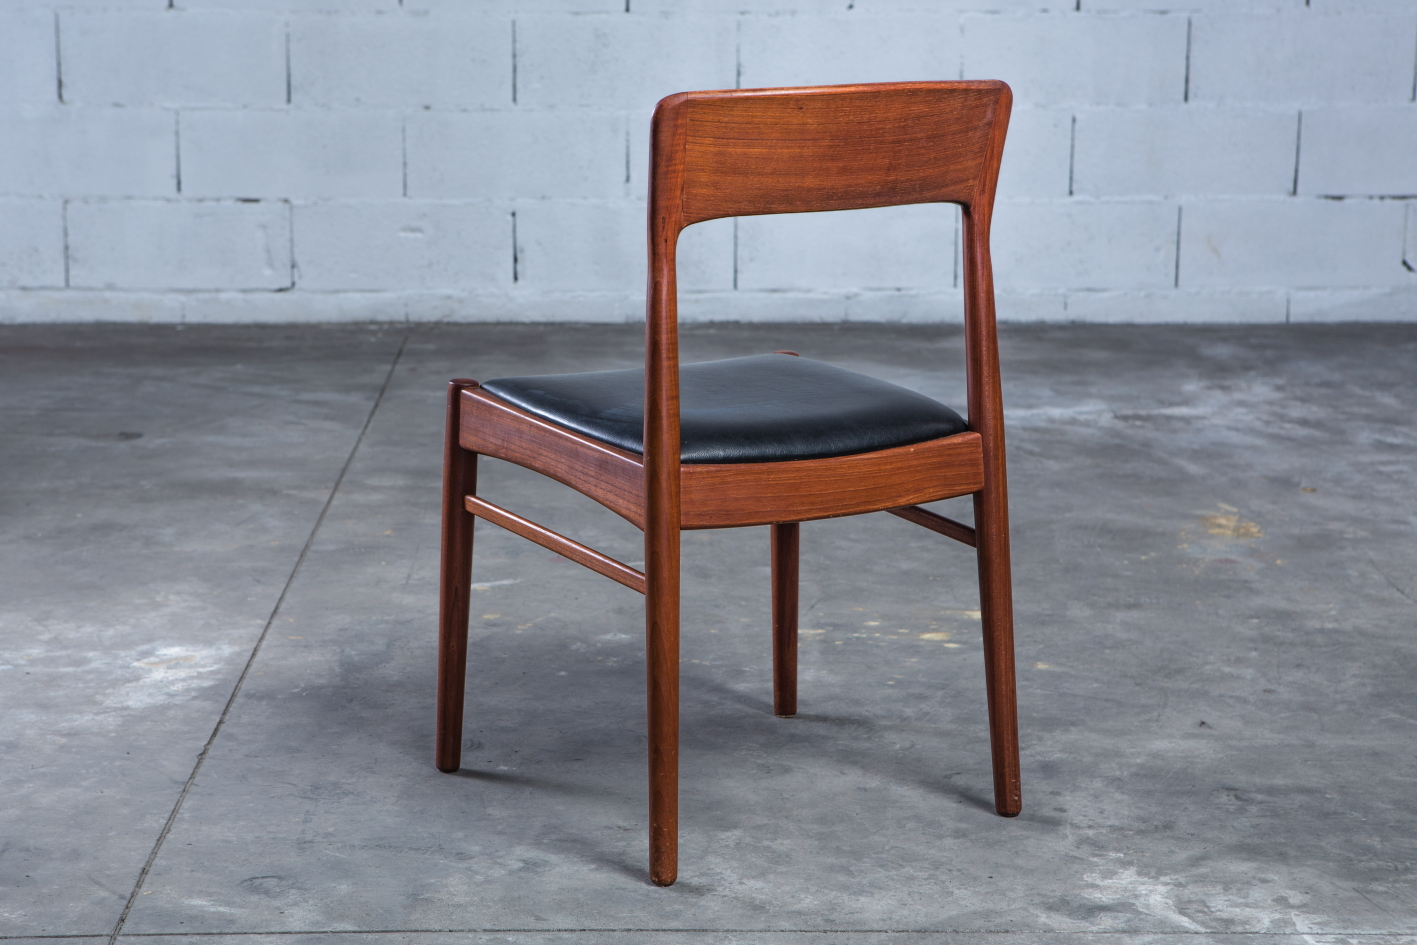 mid century teak danish chairs - Korup Stolefabrik - 3/4 back view